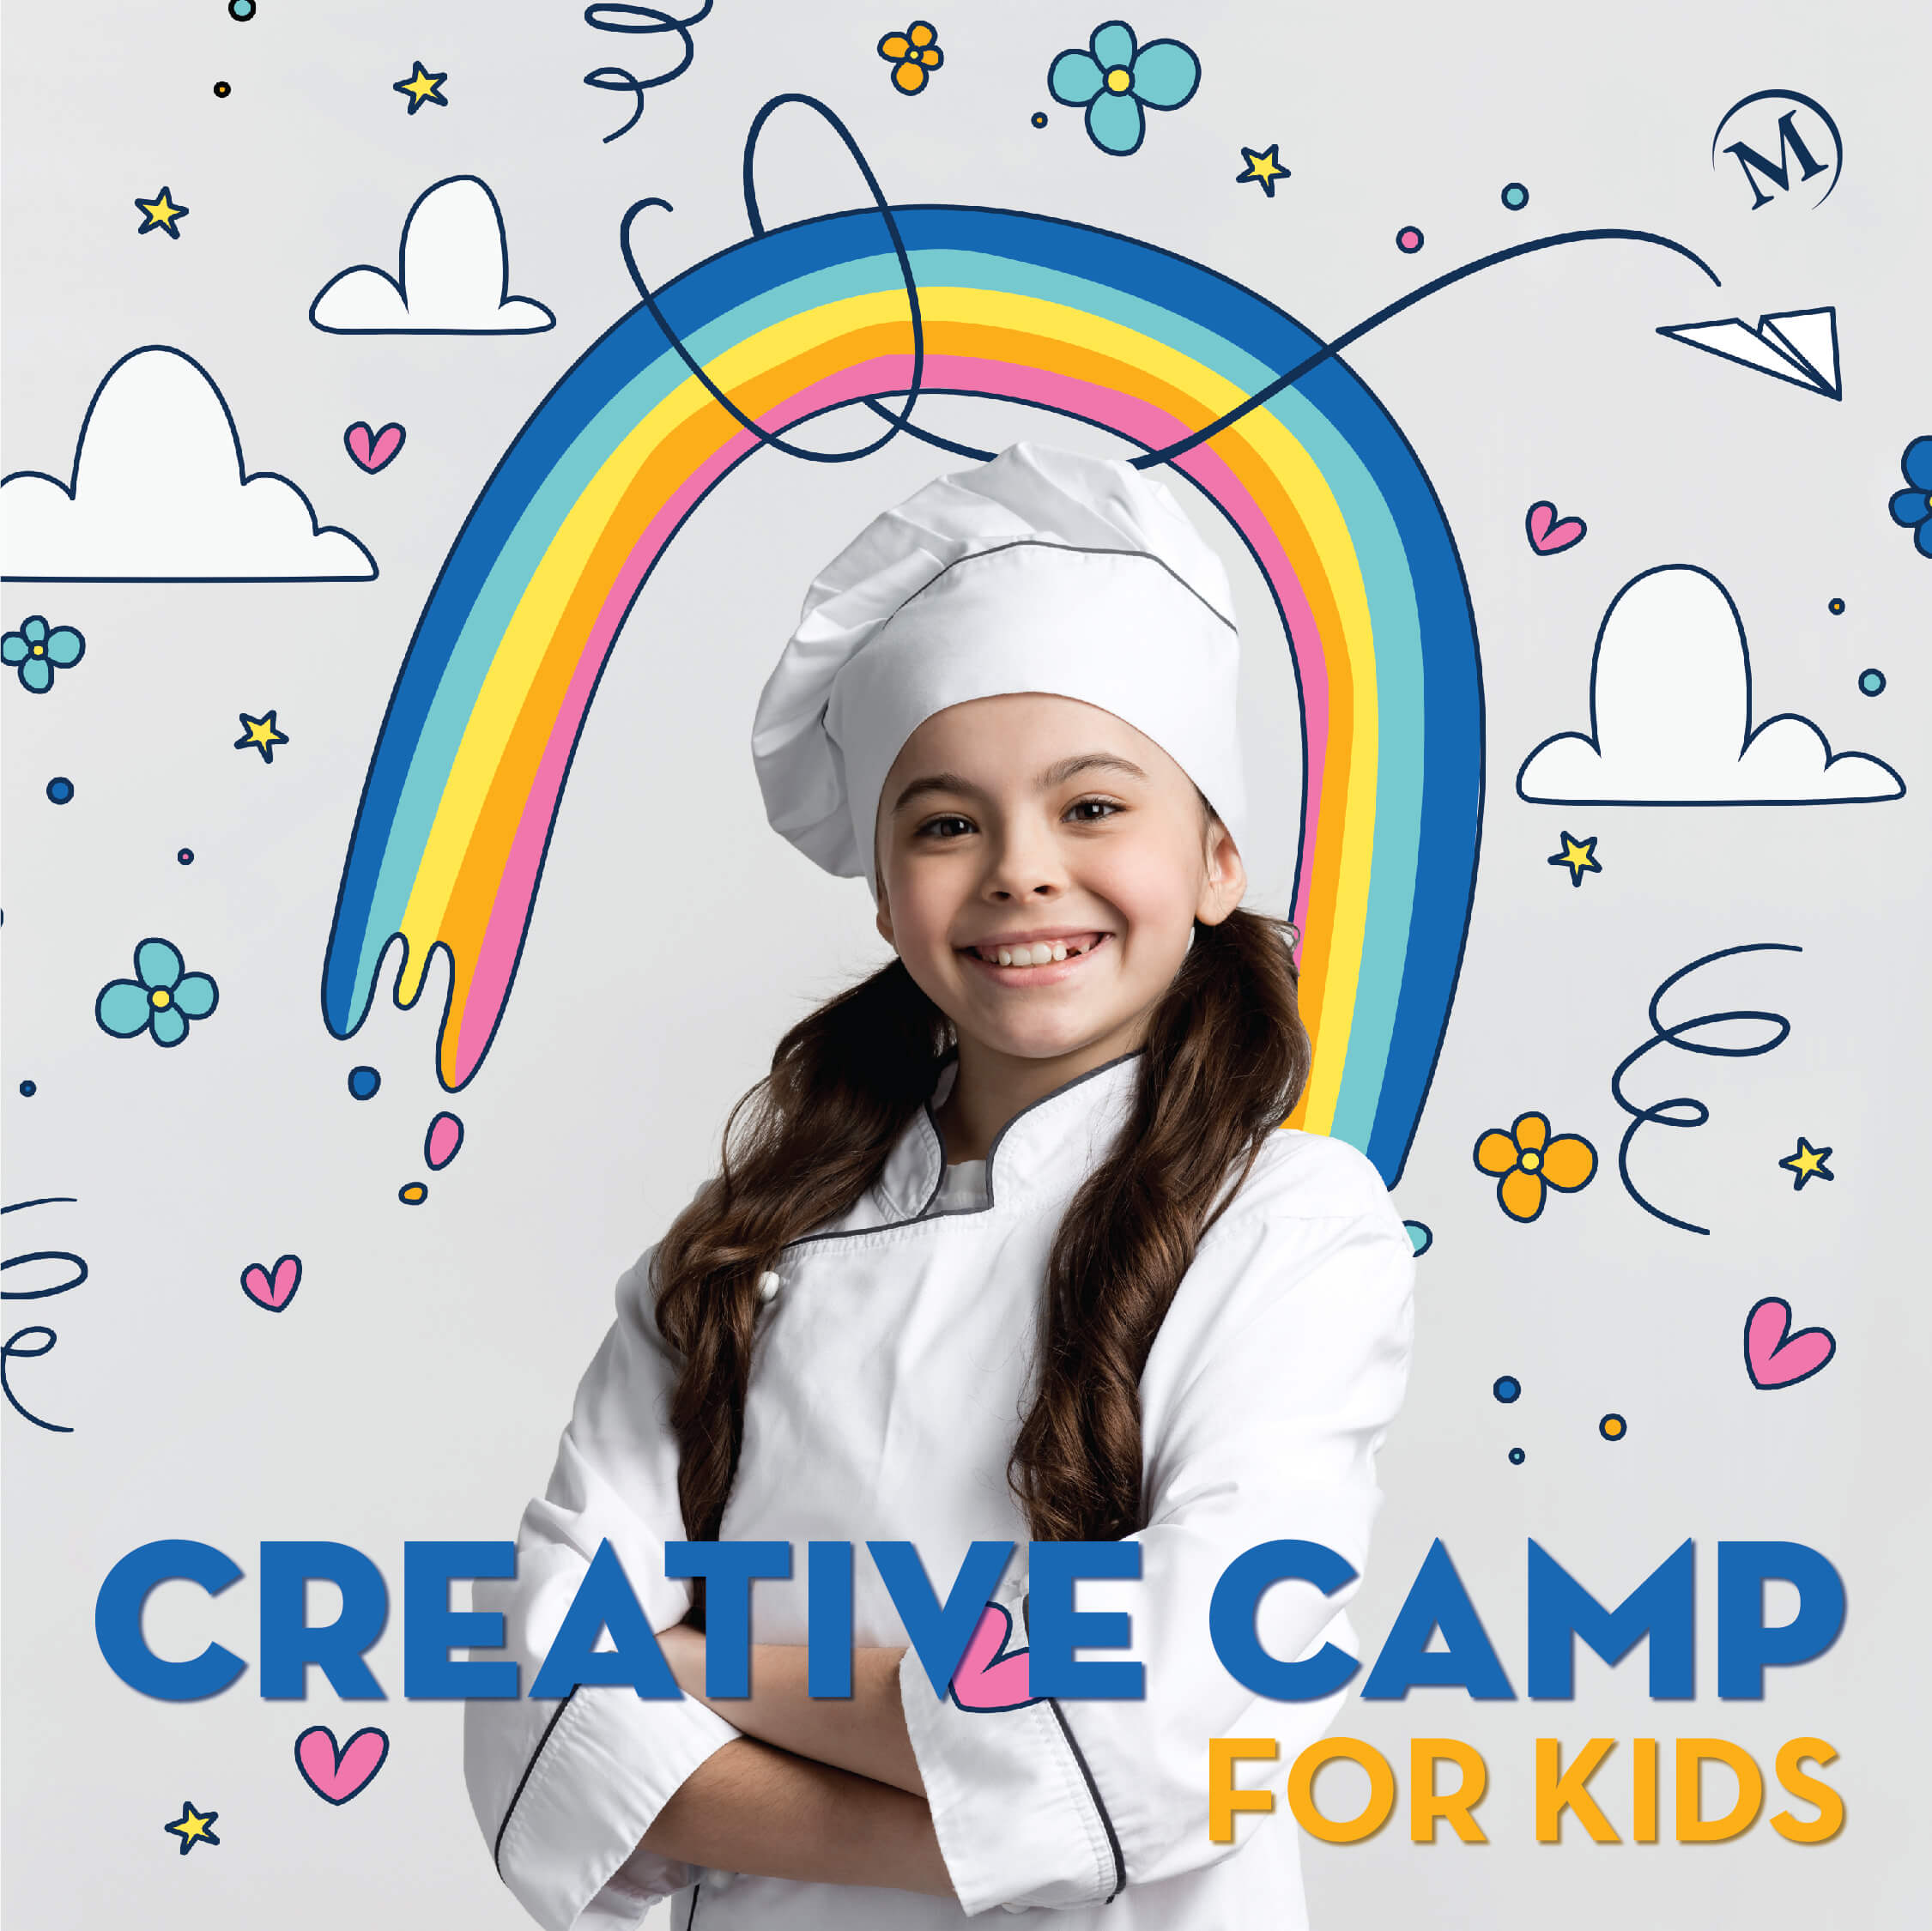 Creative Camp for Kids